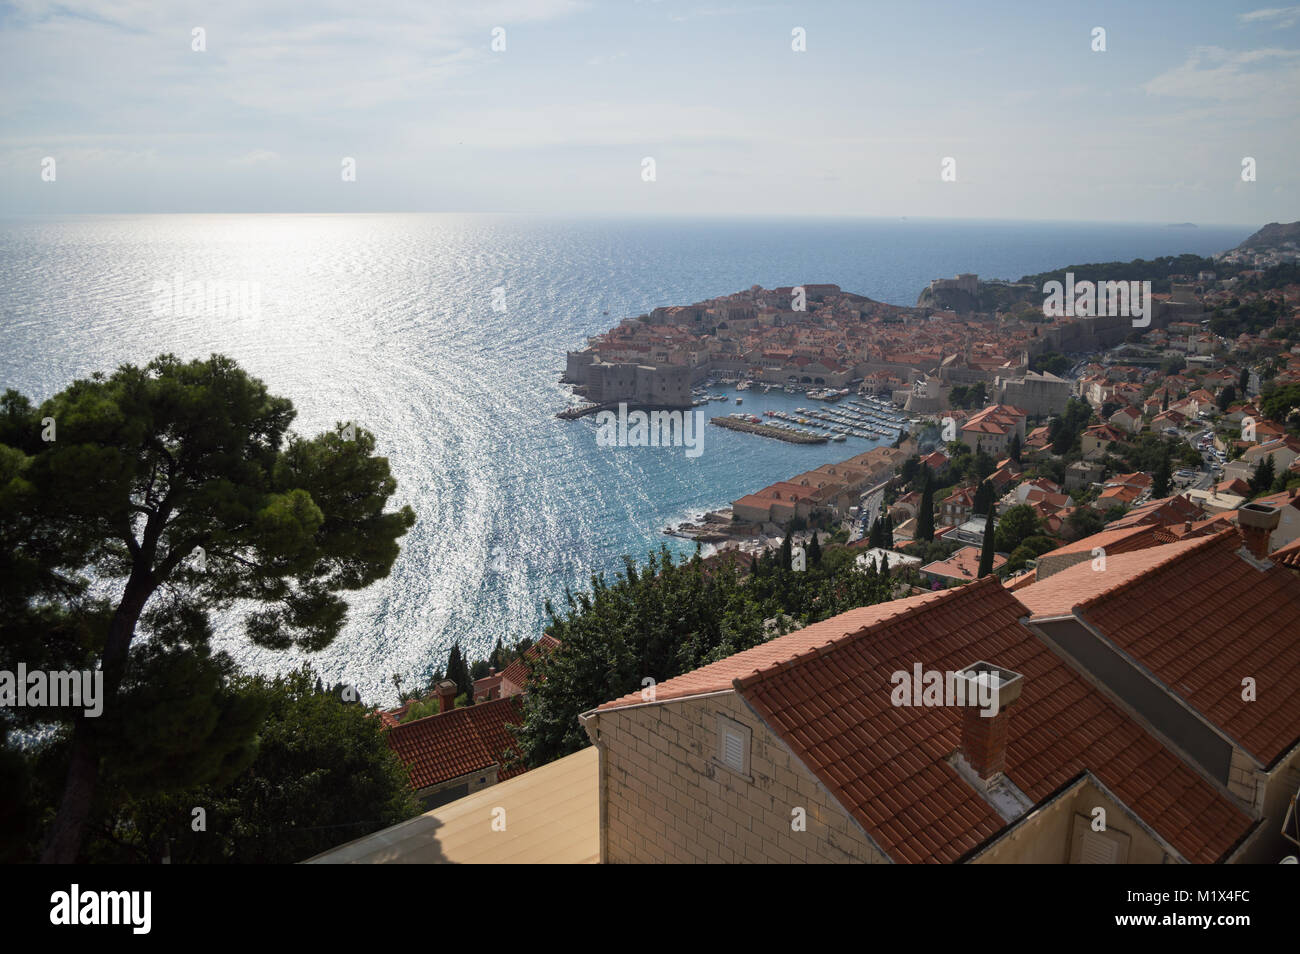 View onto Old Town of Dubrovnik with Harbor from Lookout Point, Croatia Stock Photo